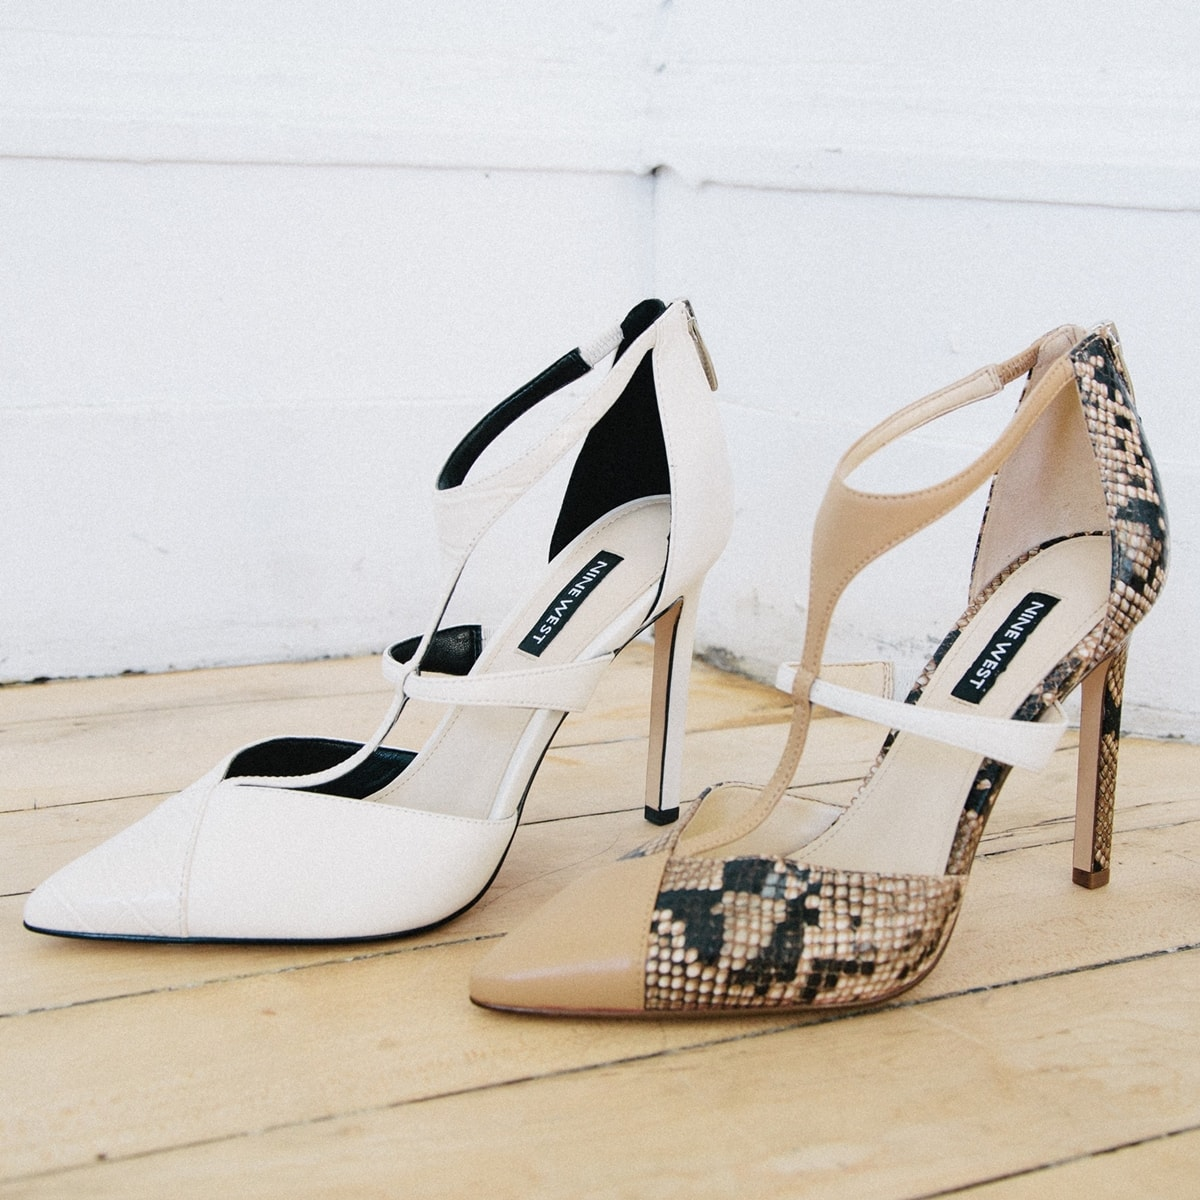 Nine West's chic cream and natural snake Tstrap dress t-strap pumps feature a high heel and pointy toe